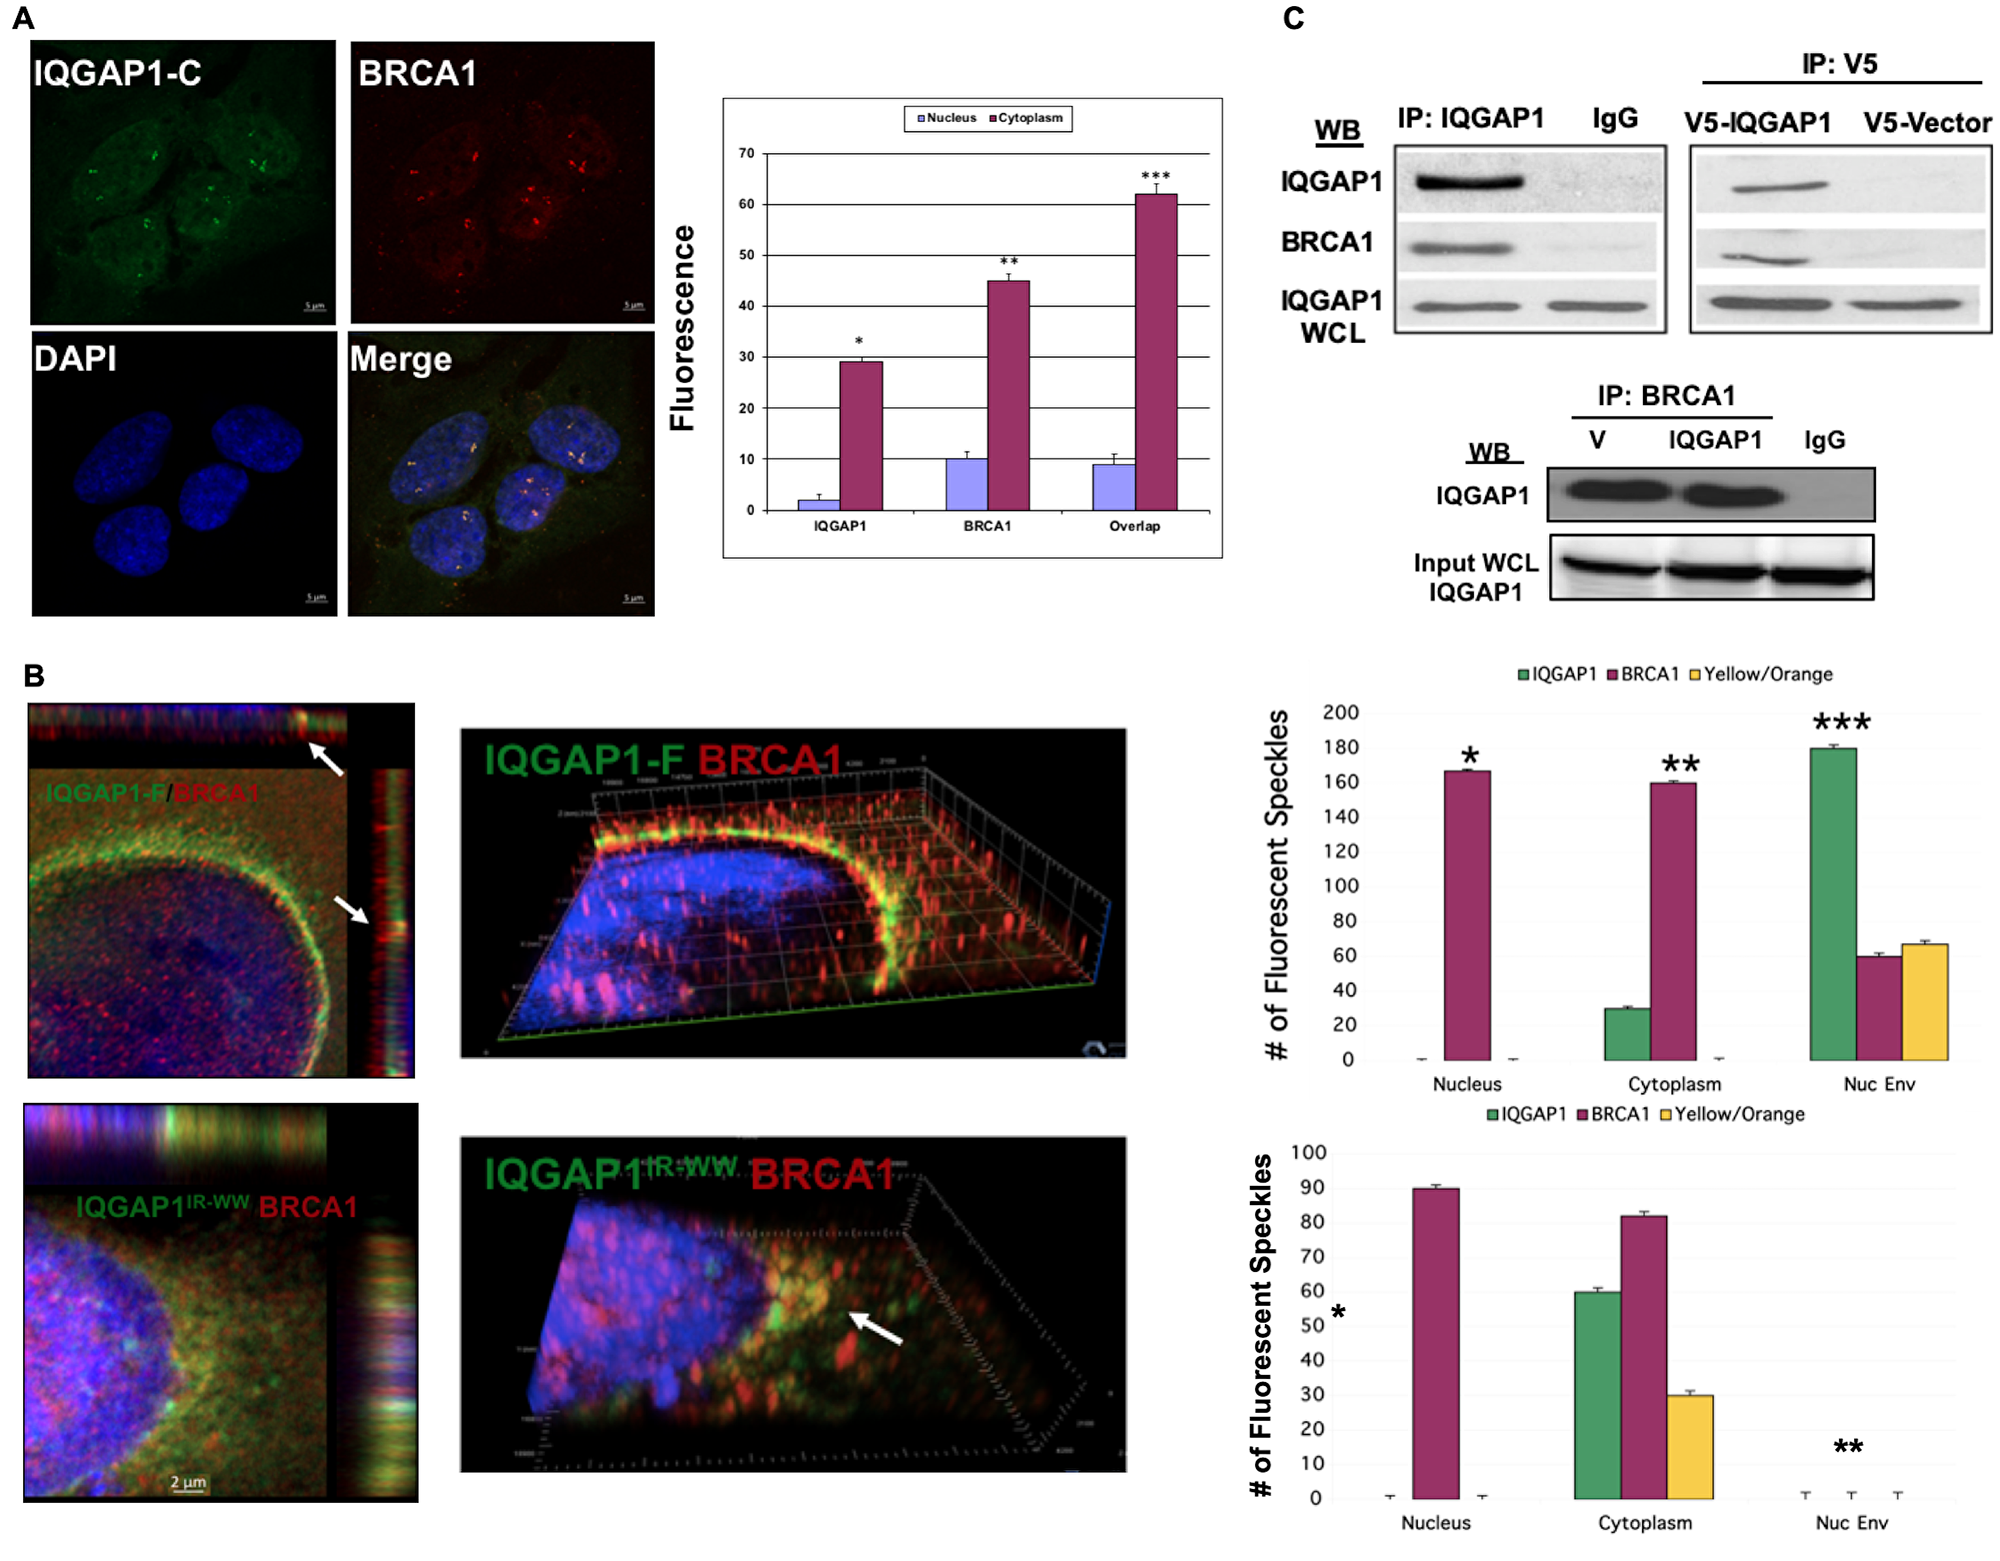 IQGAP1 interacts with and modulates the subcellular distribution of the centrosome marker BRCA1.